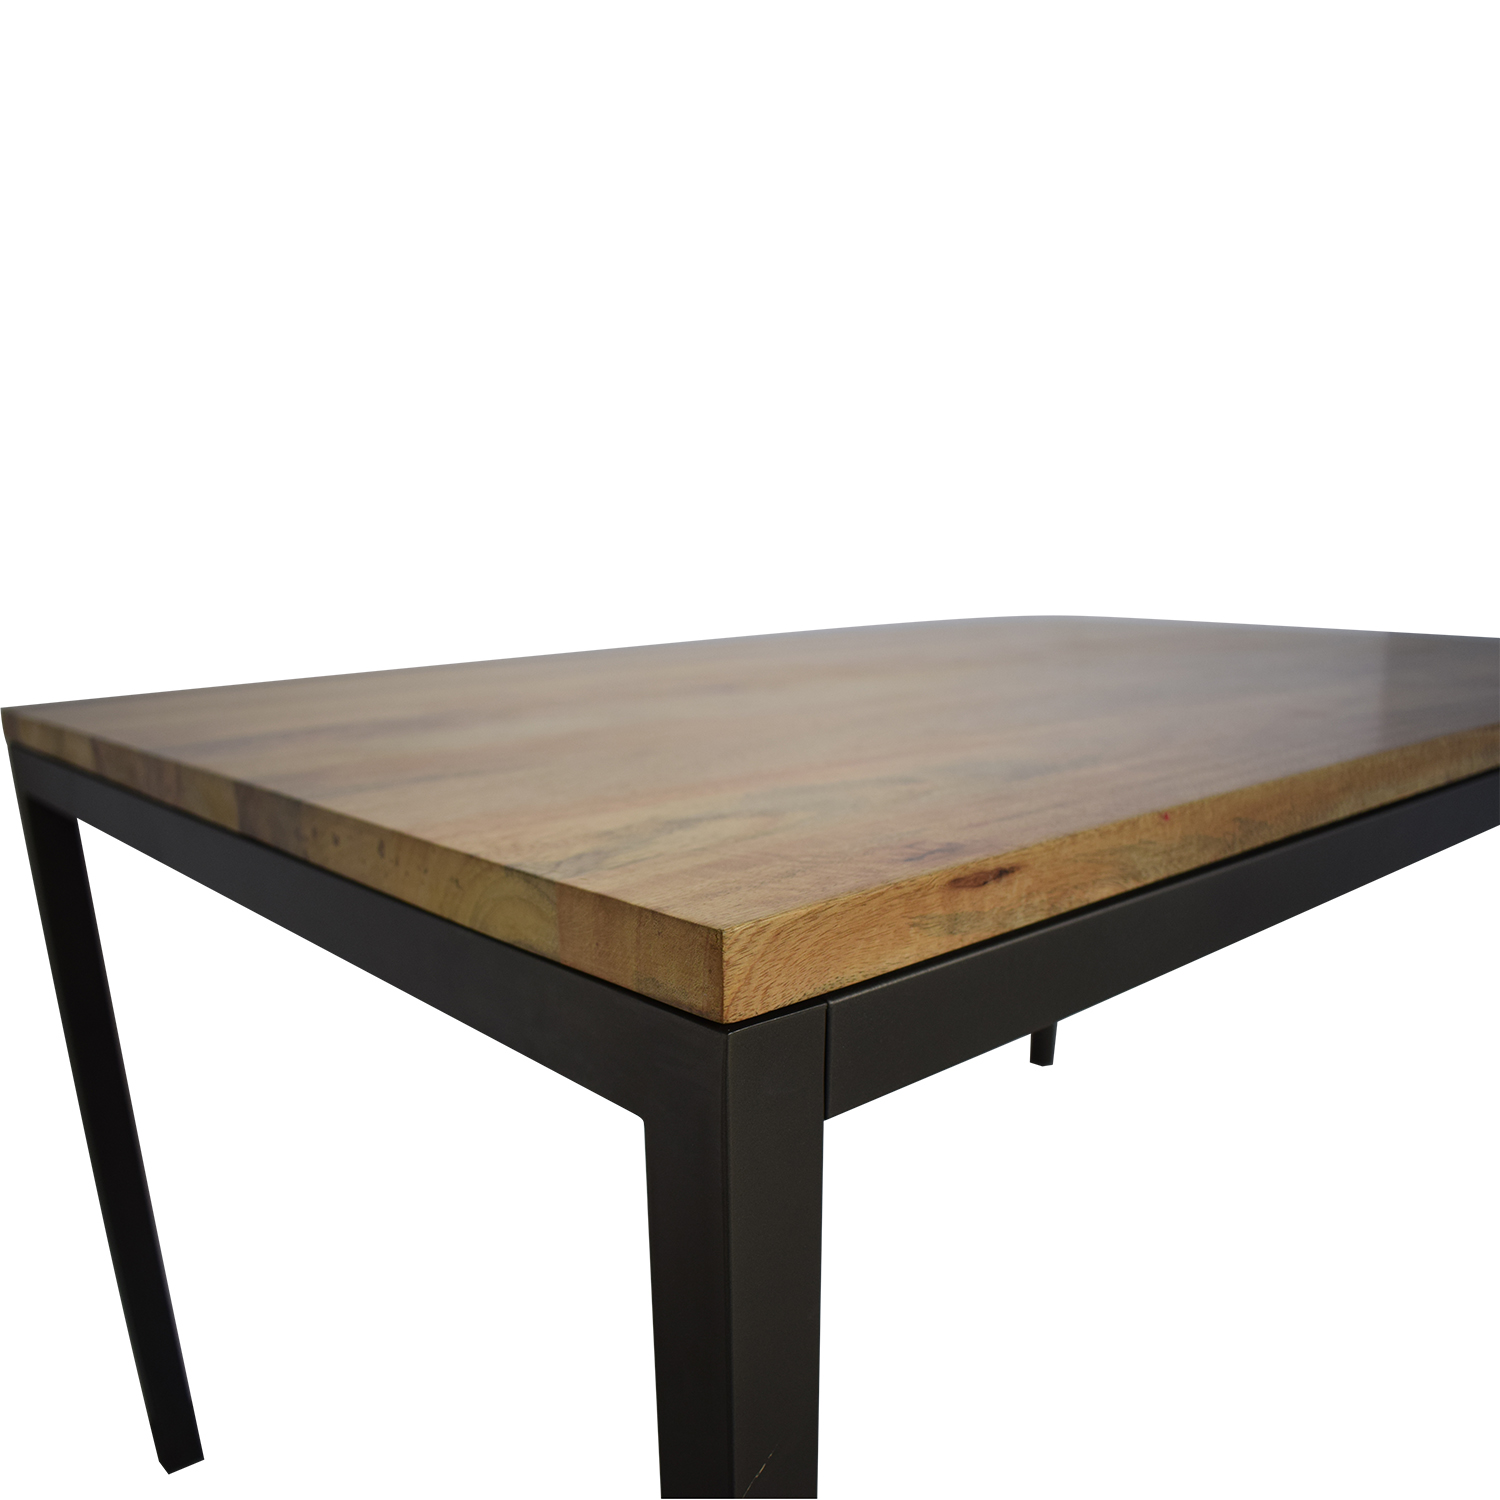 West Elm West Elm Box Frame Dining Table used